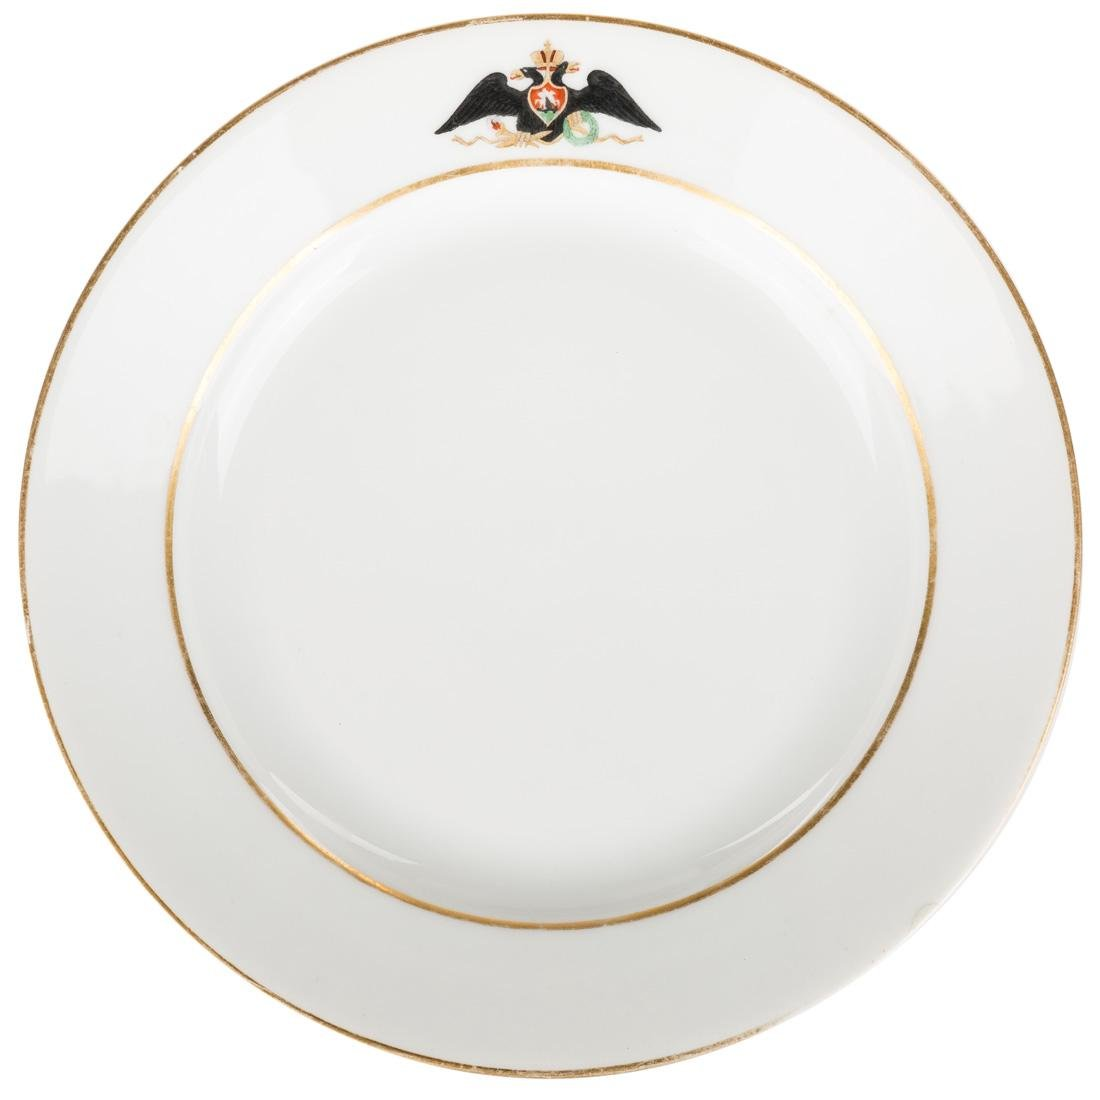 A PAIR OF RUSSIAN IMPERIAL PORCELAIN PLATES FROM THE - 4